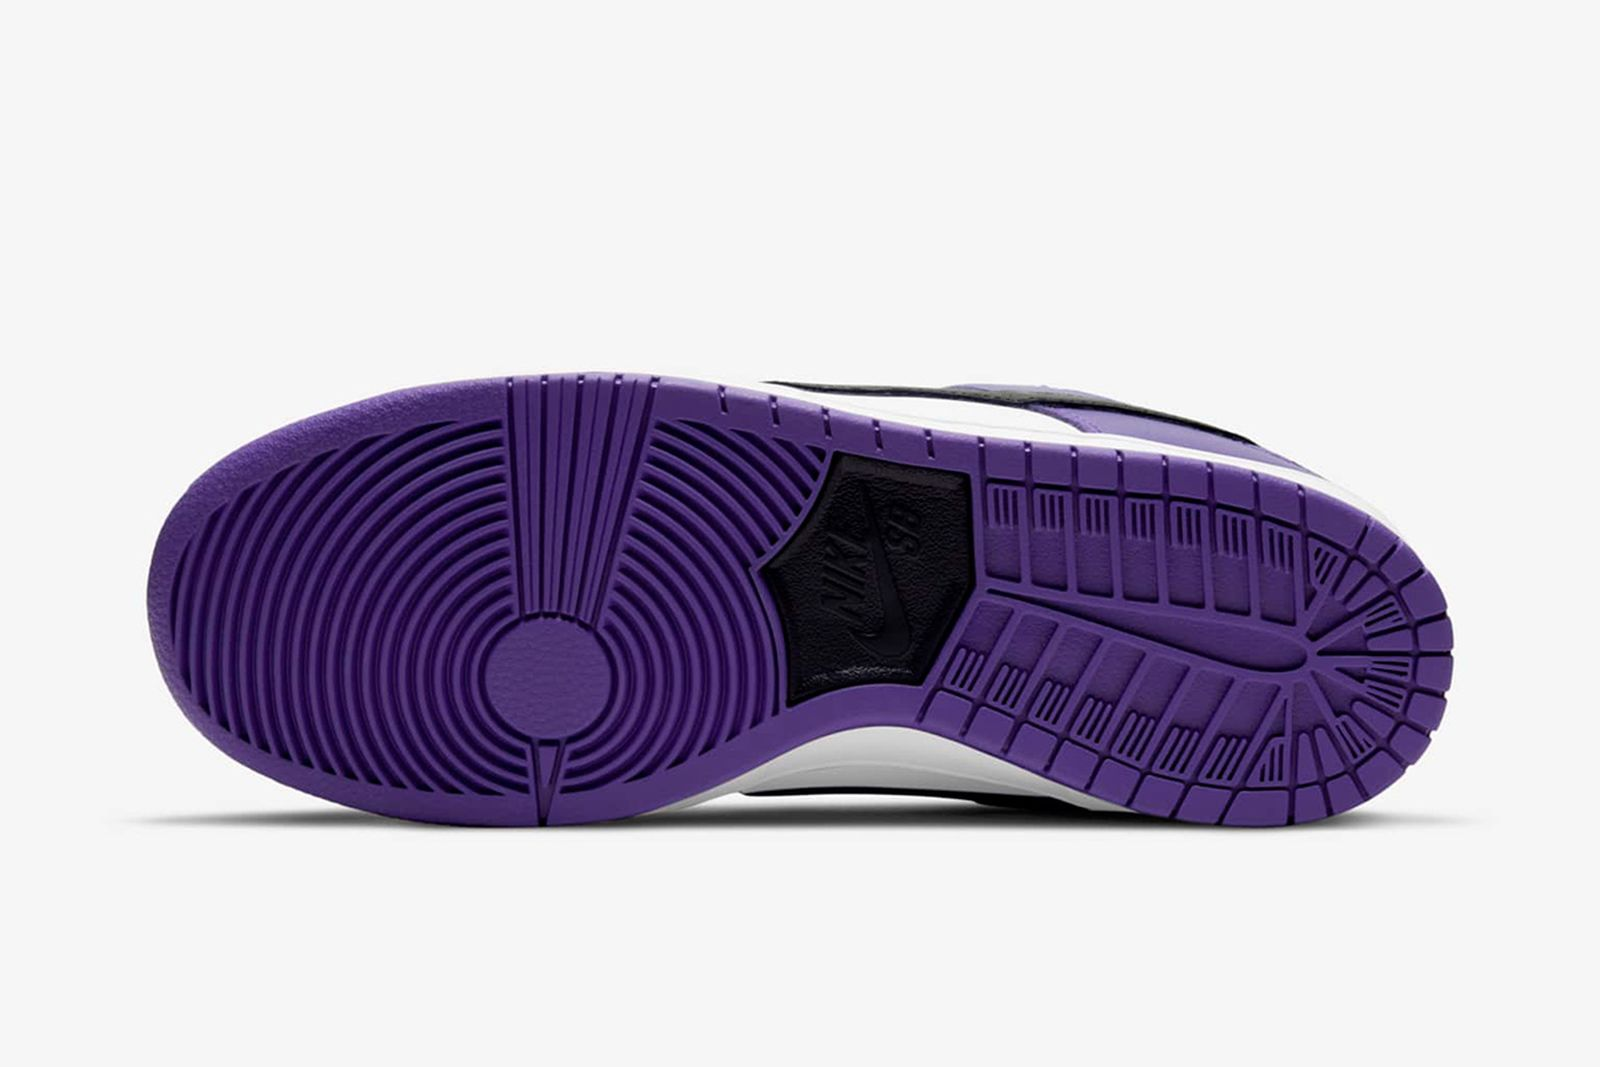 nike-sb-dunk-low-court-purple-release-date-price-03